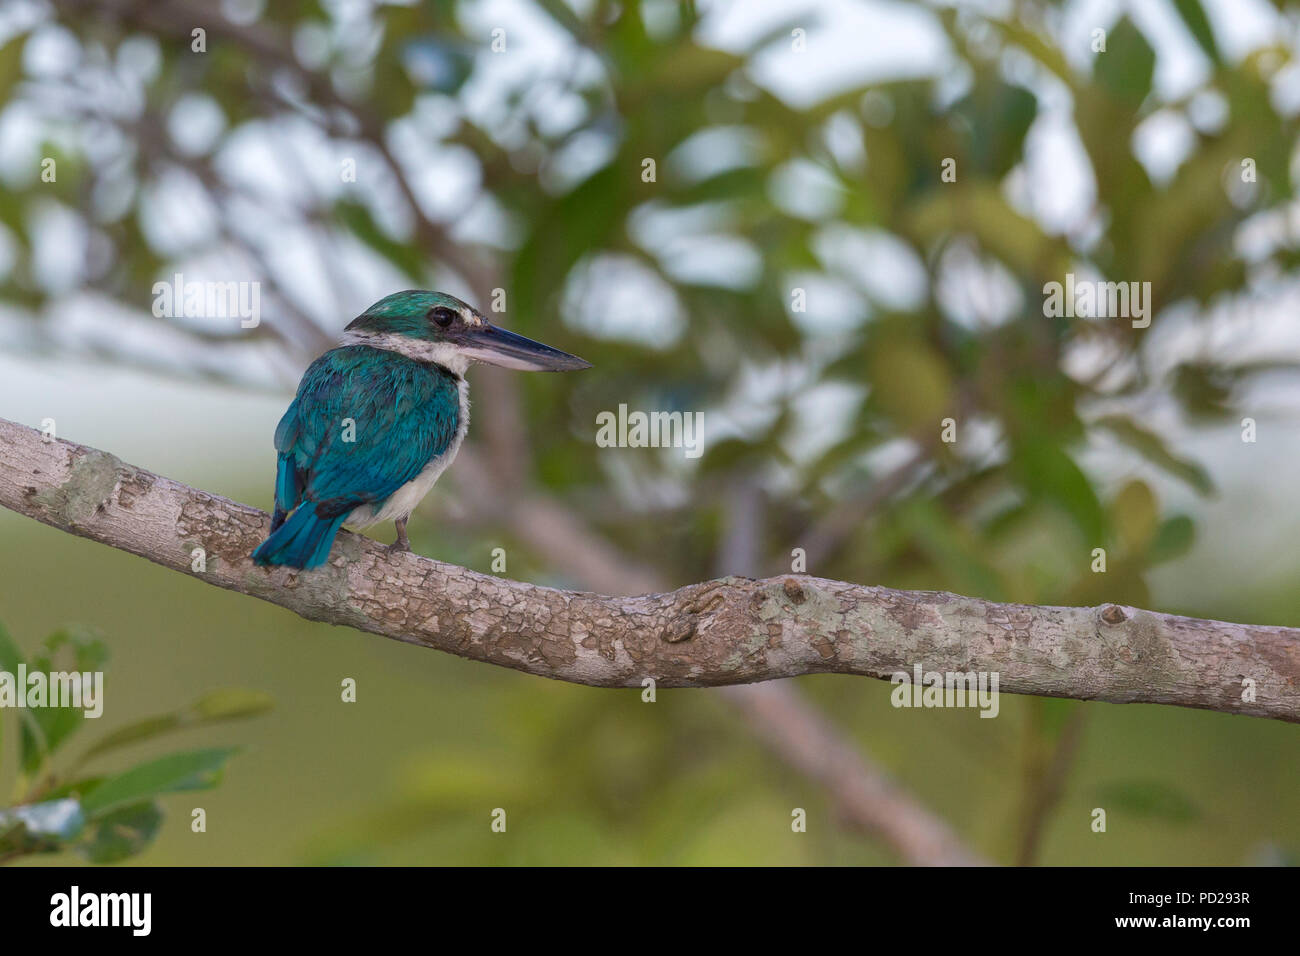 Collared Kingfisher or Todiramphus chloris in the Sunderbans mangrove forest in West Bengal India. - Stock Image